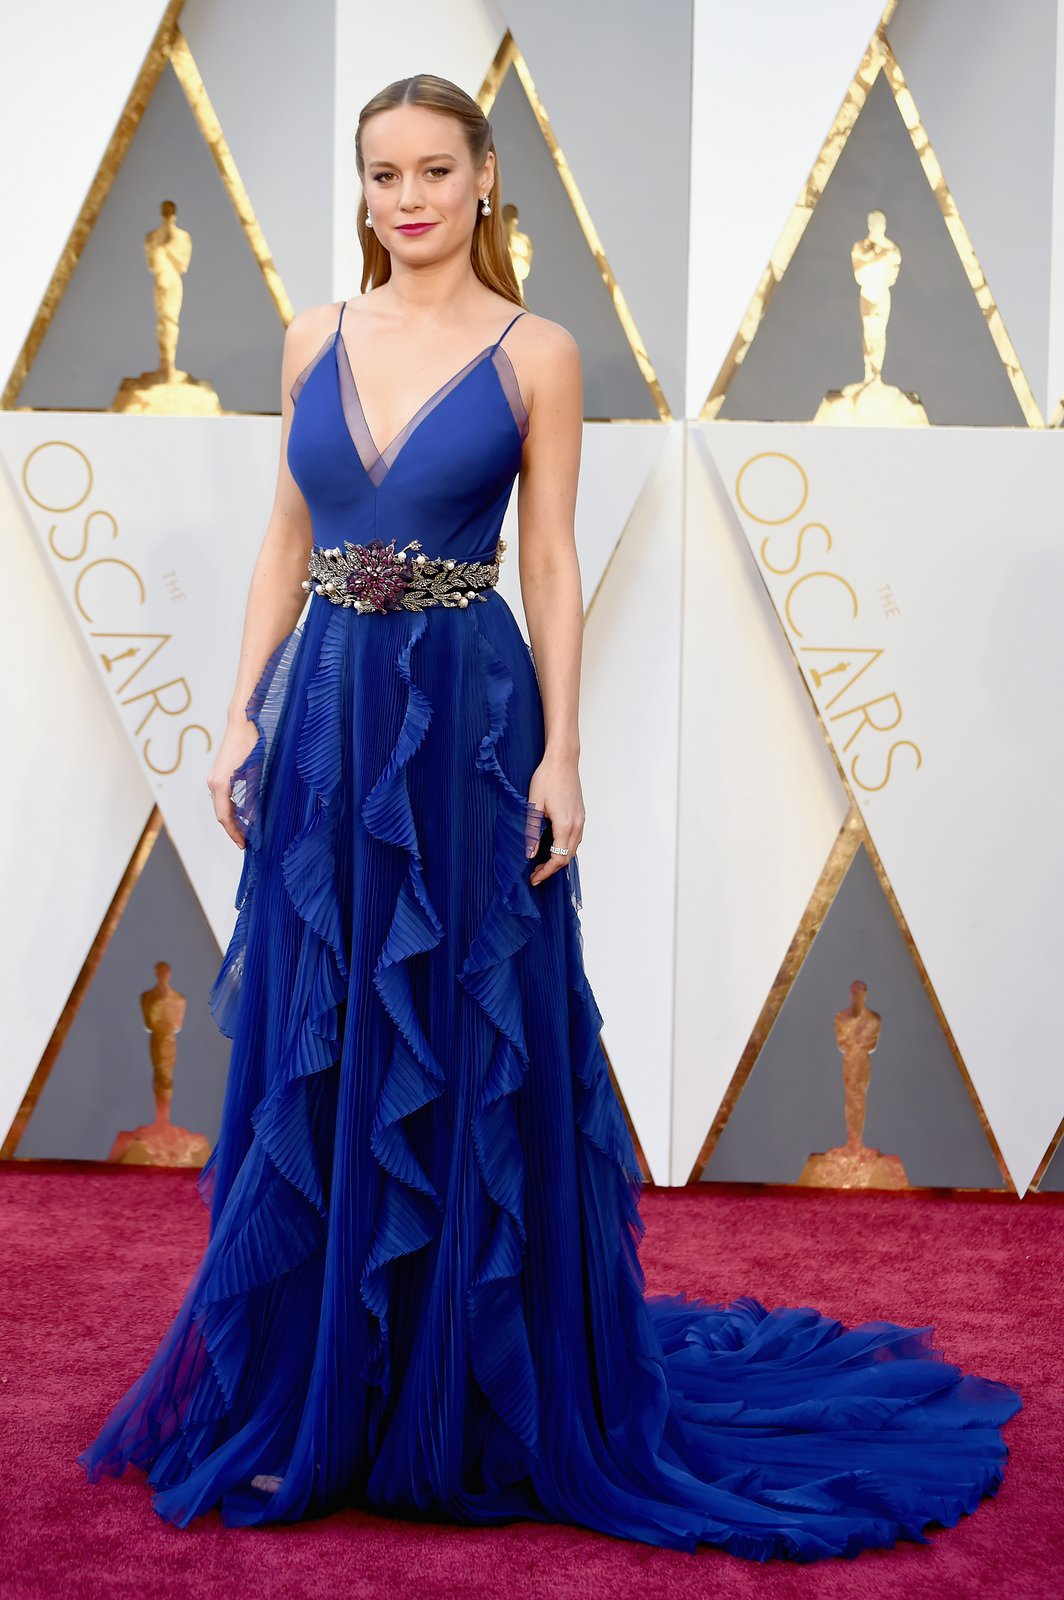 brie-larson-oscars-red-carpet-2016.jpg